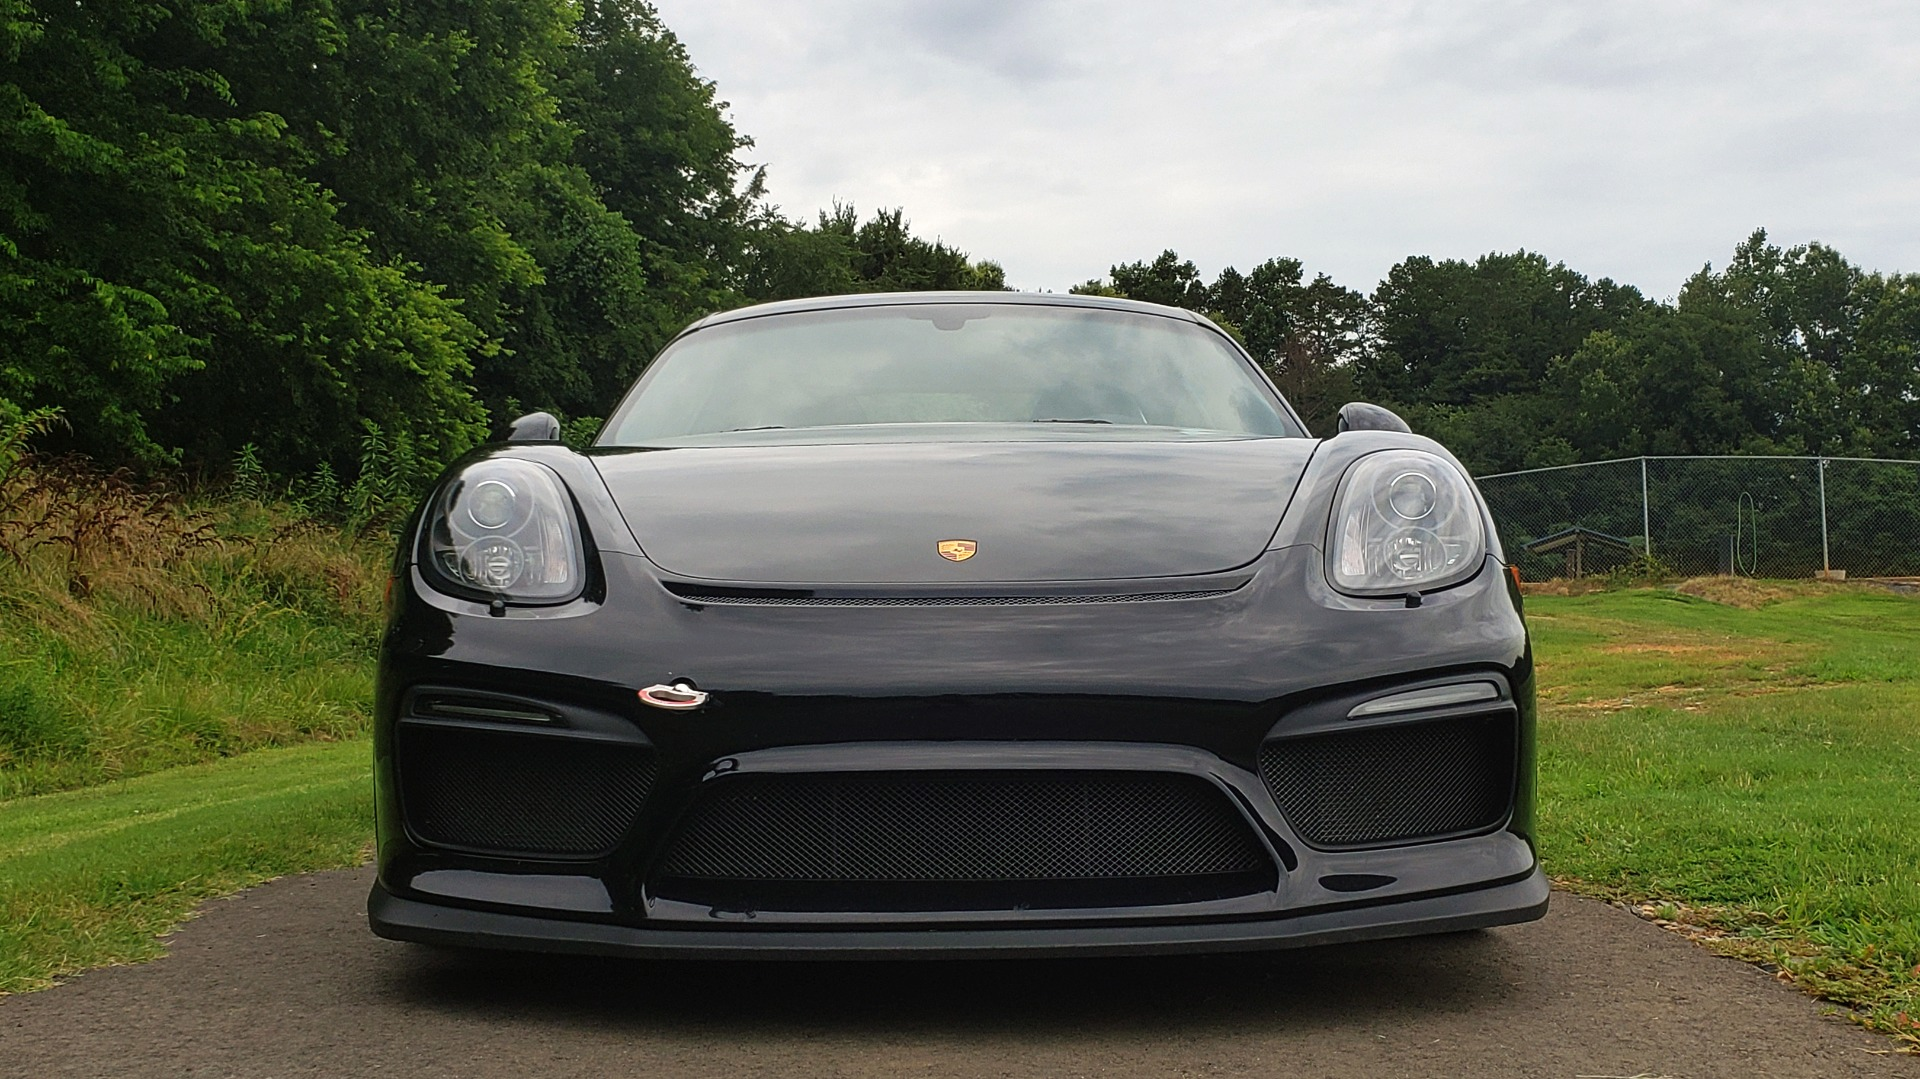 Used 2016 Porsche CAYMAN GT4 / NAV / 6-SPD MANUAL / DUAL-ZONE A/C / SPORT EXHAUST for sale Sold at Formula Imports in Charlotte NC 28227 19